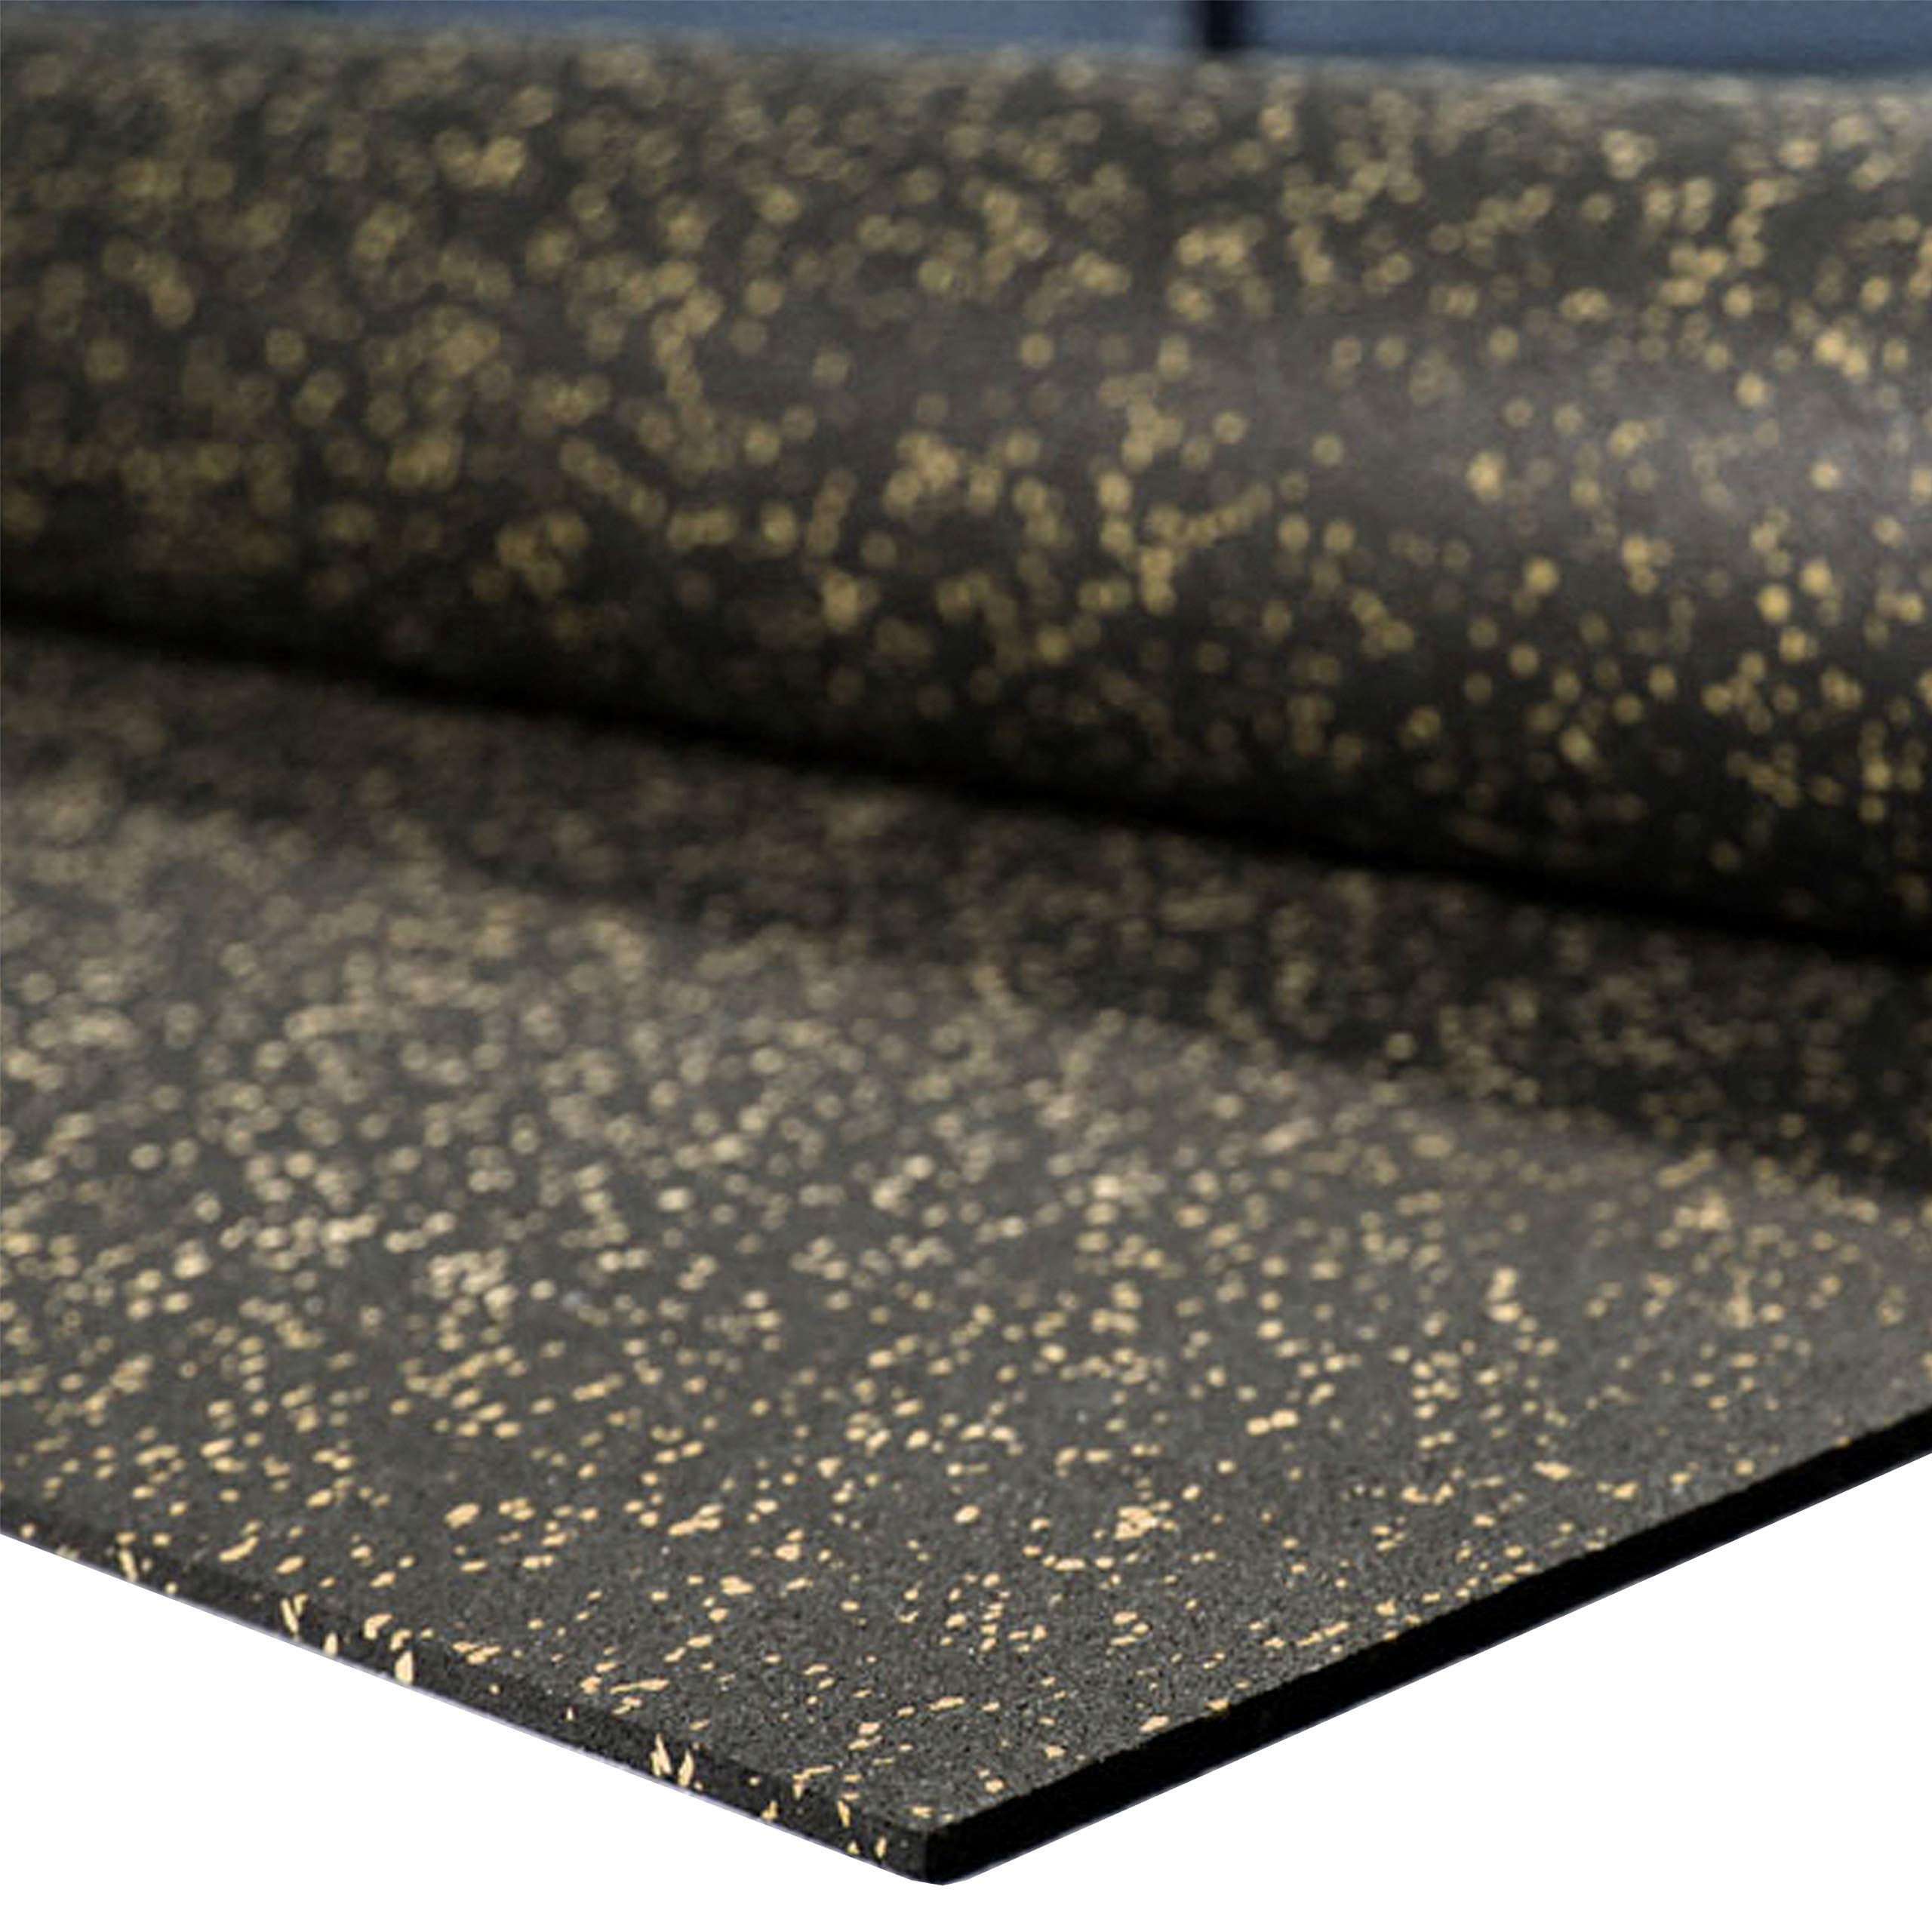 """IncStores 1/4"""" Tough Rubber Roll (4' x 10') - Excellent Gym Floor mats for Medium/Large Equipment and Light/Moderate Free Weights (5 Mats - 4'x10' Tan)"""